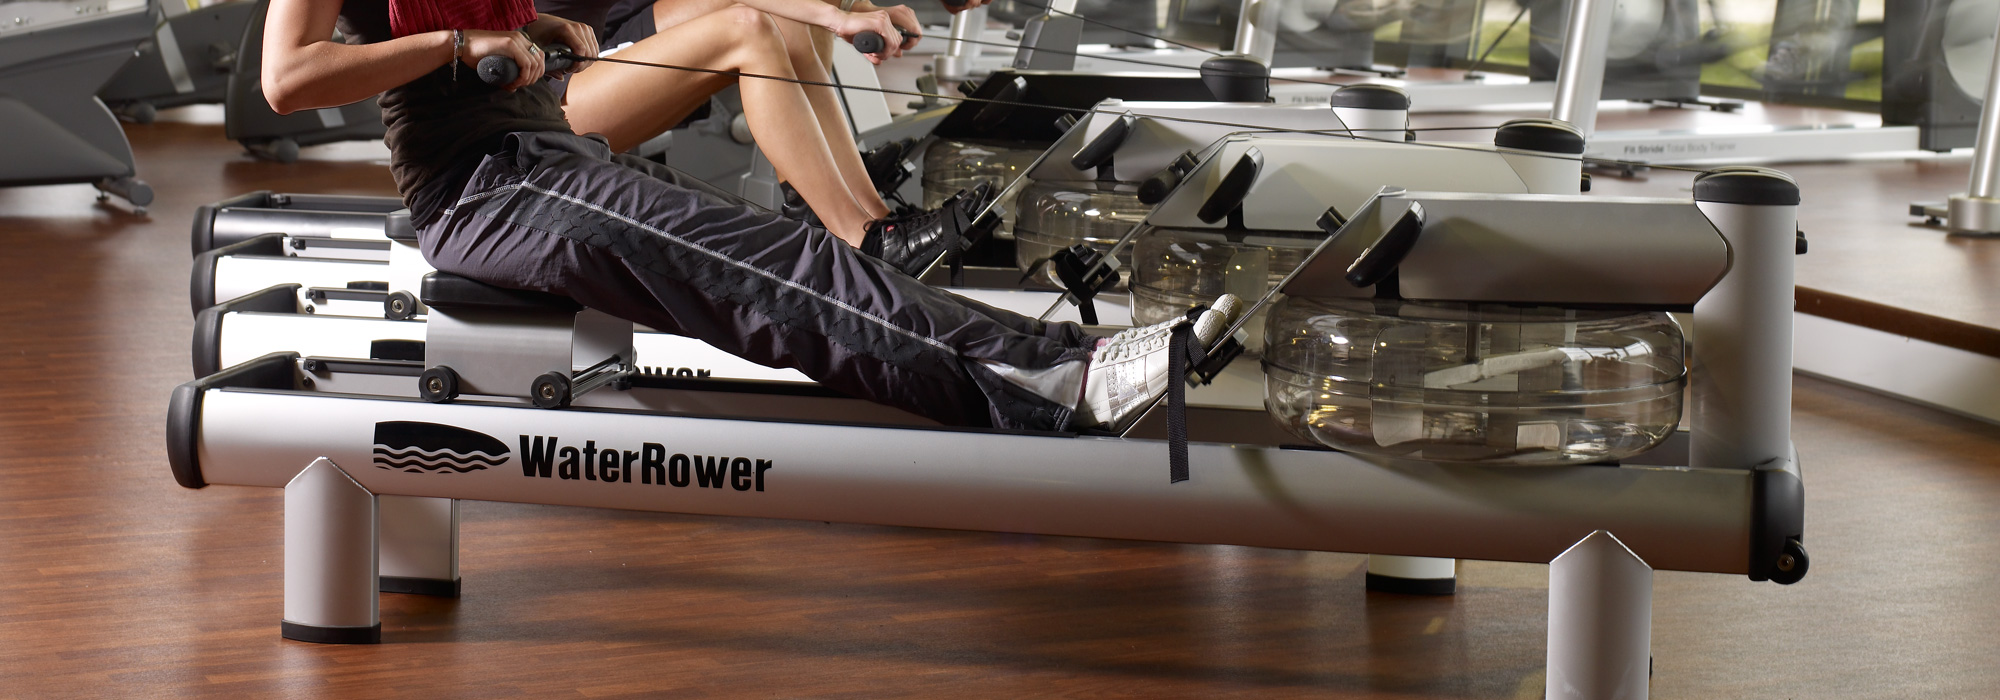 WaterRower Commercial Rowers